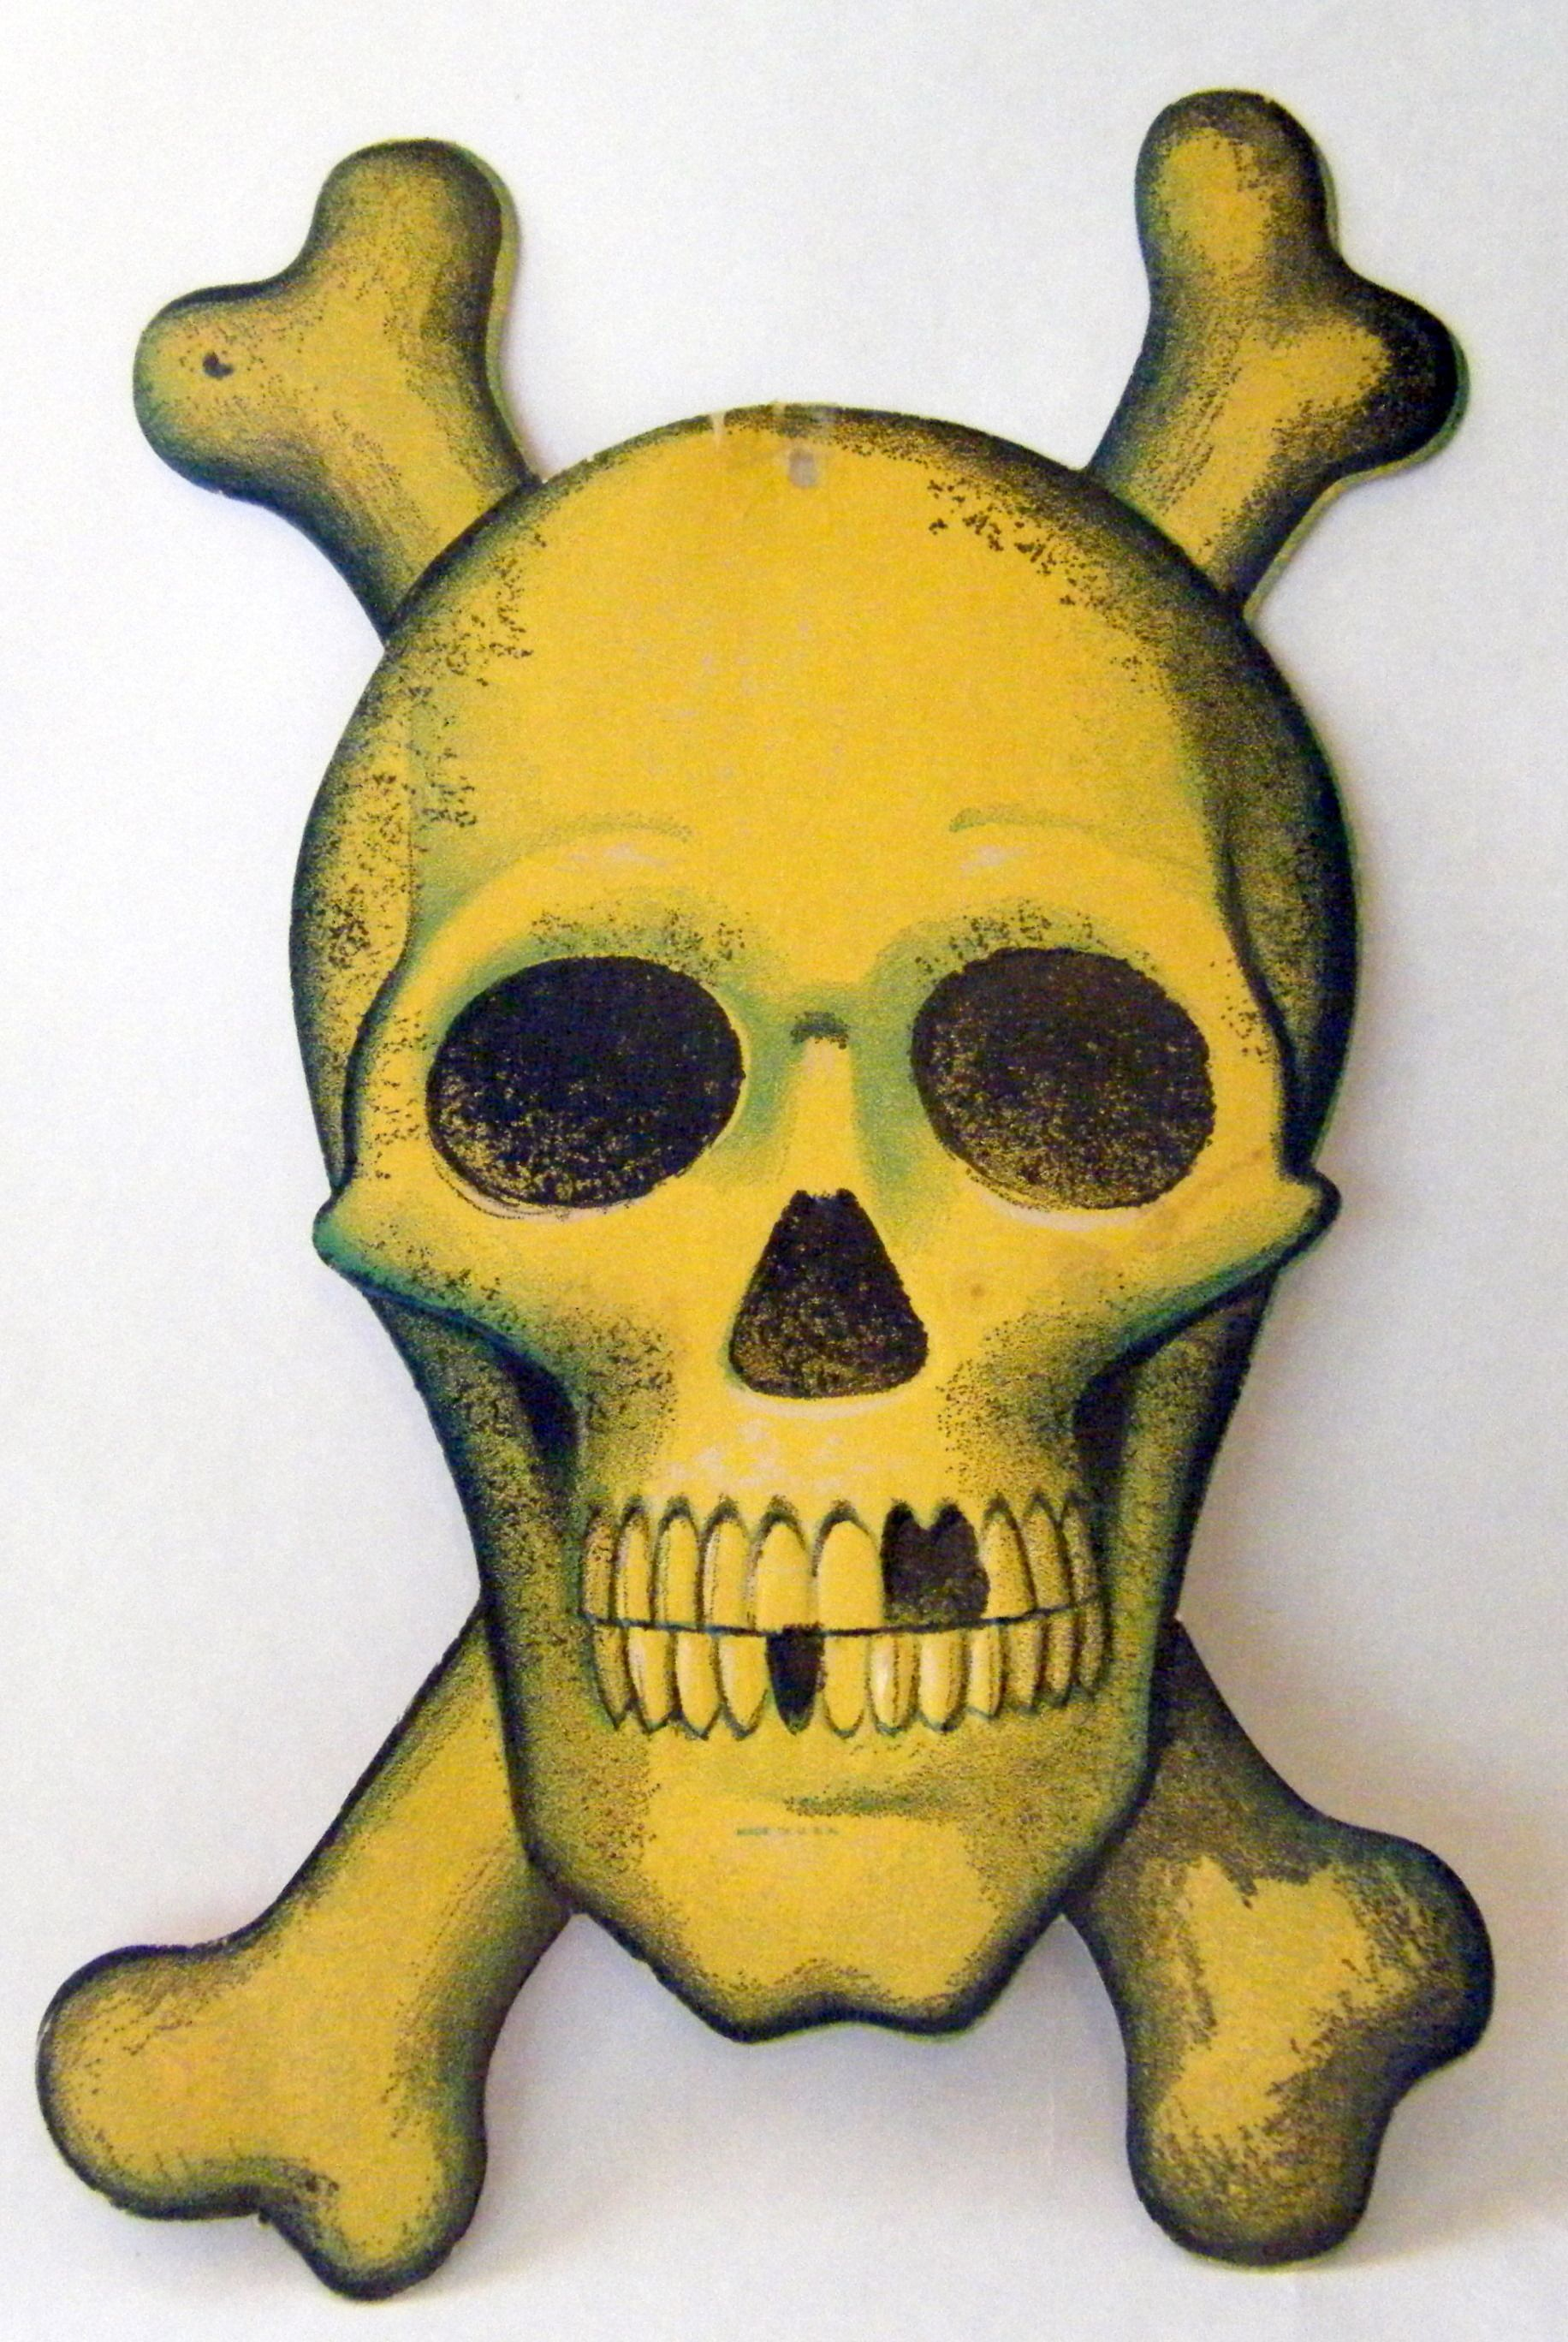 Vintage beistle halloween decorations - 1964 Beistle Skull And Crossbones Embossed Die Cut Decoration Halloween